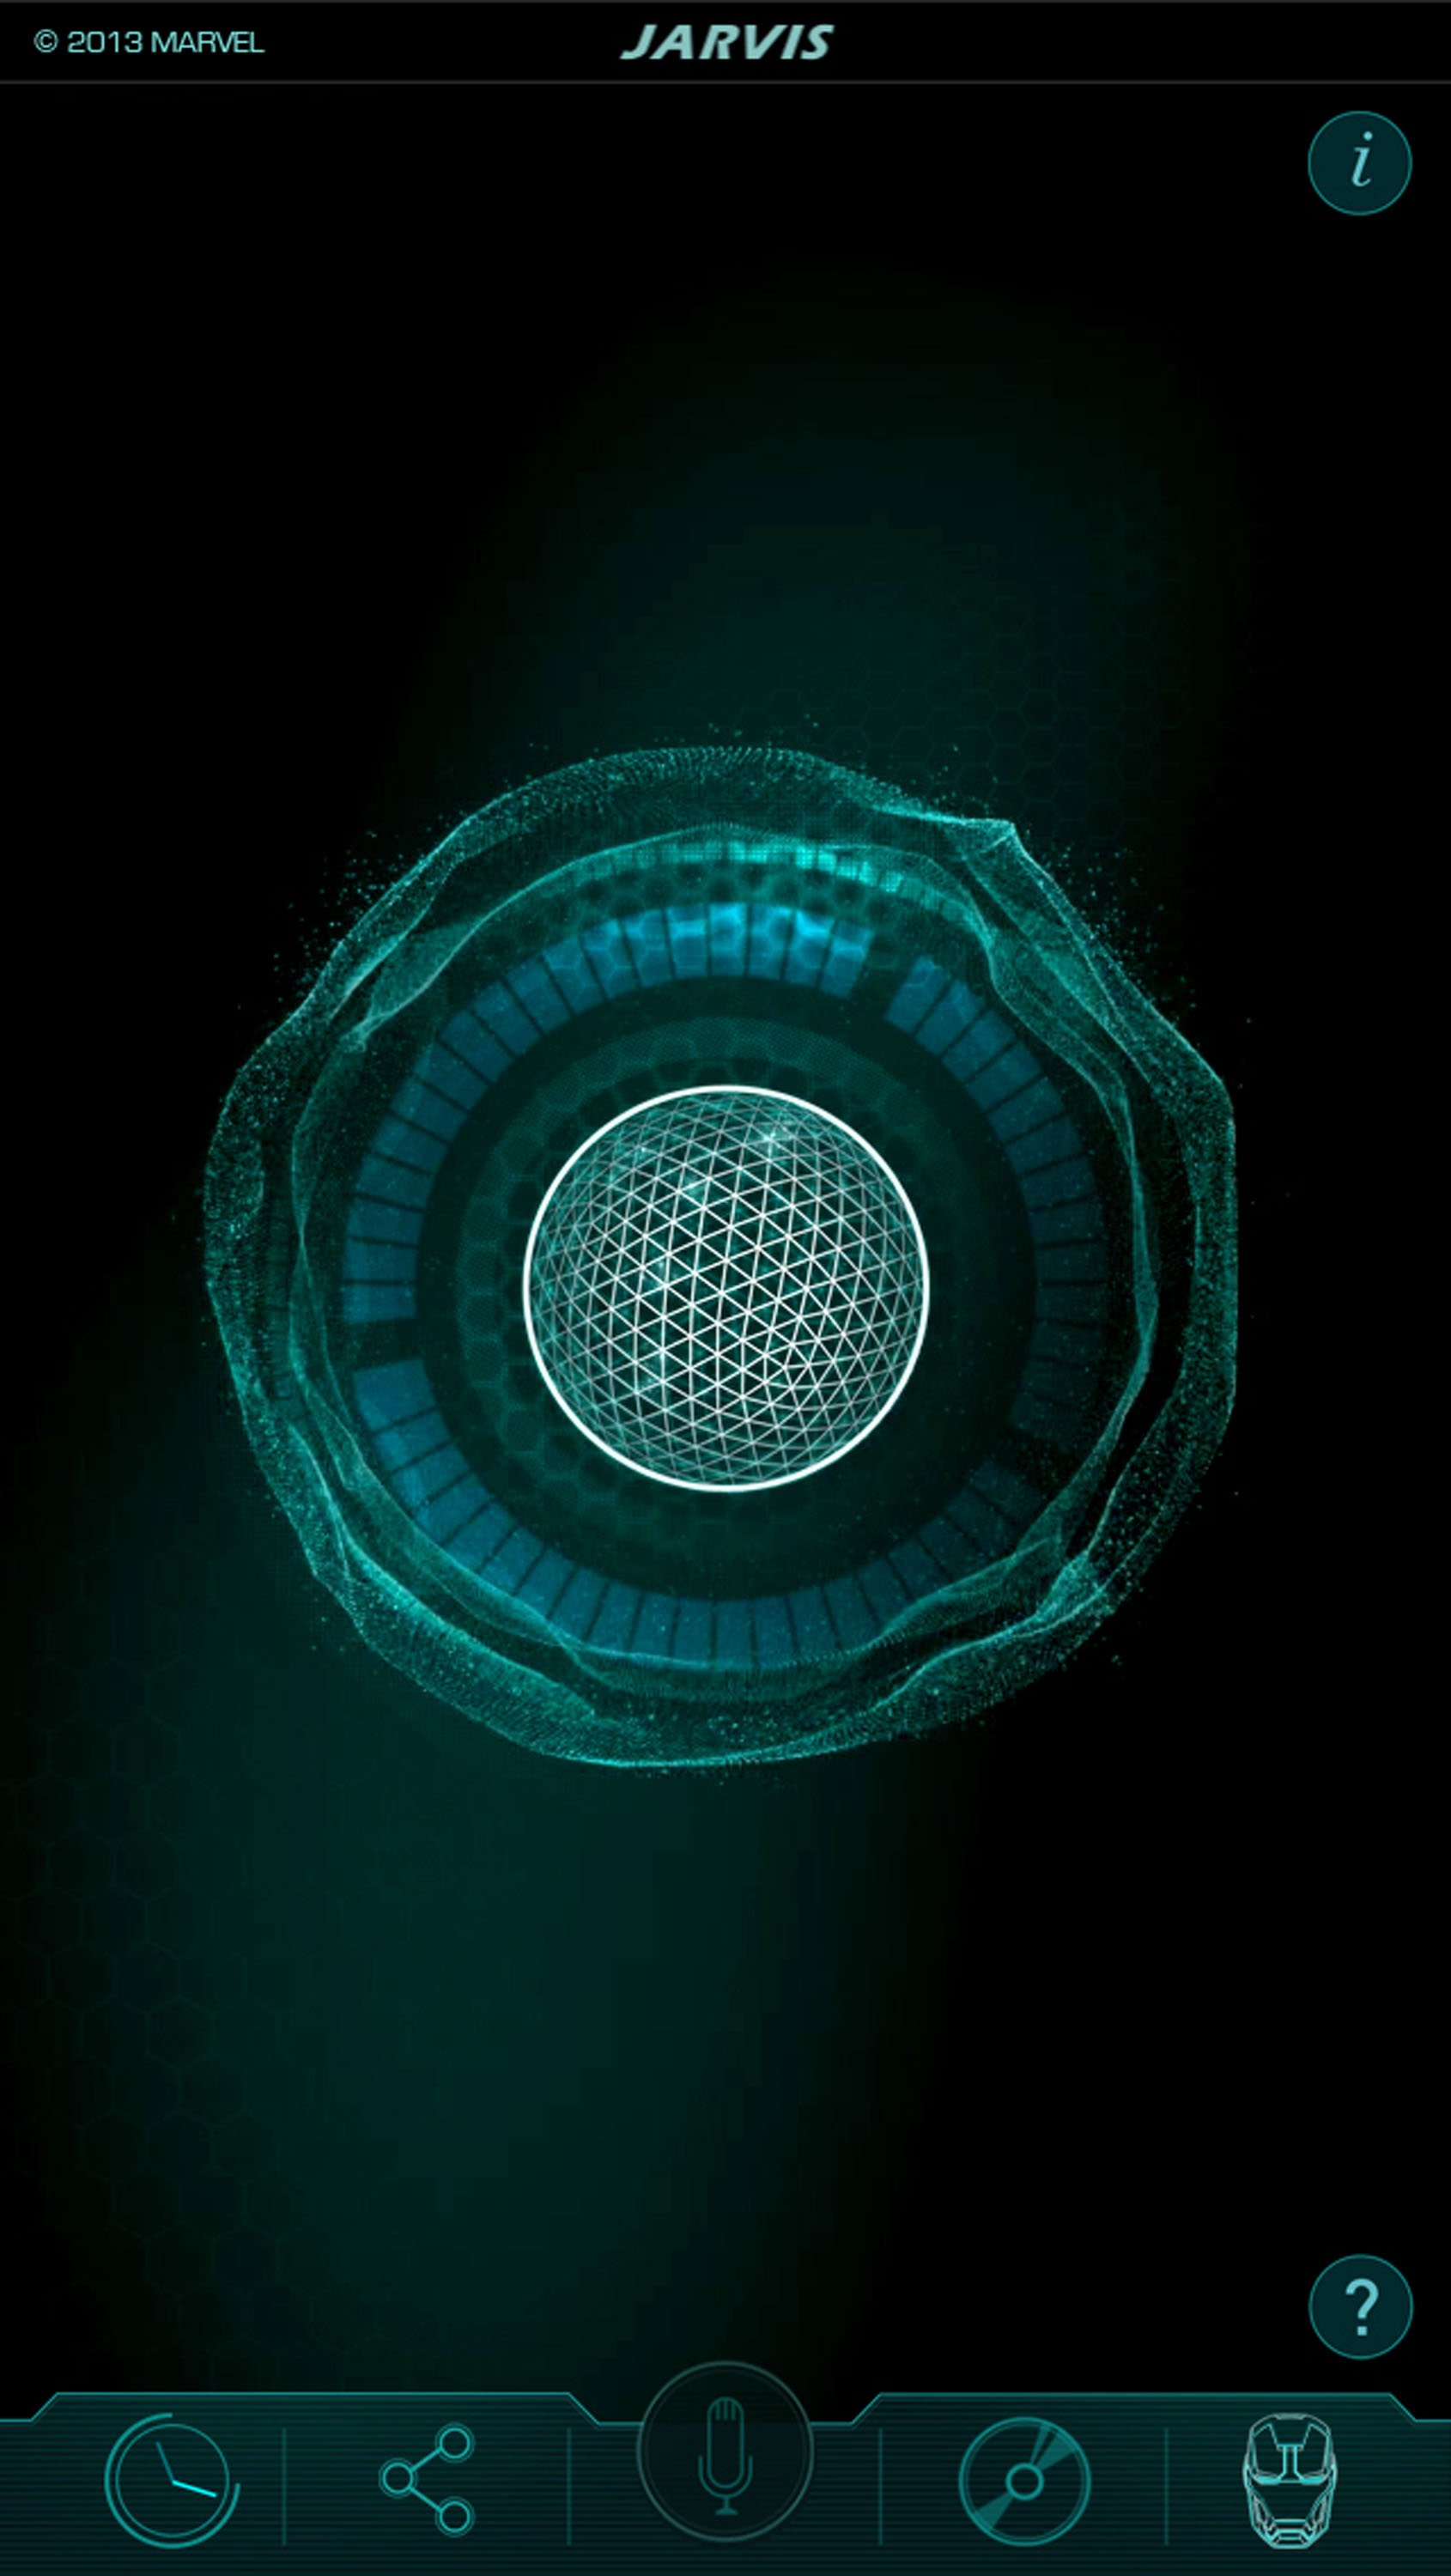 Jarvis Iphone Wallpaper Wallpapersafari